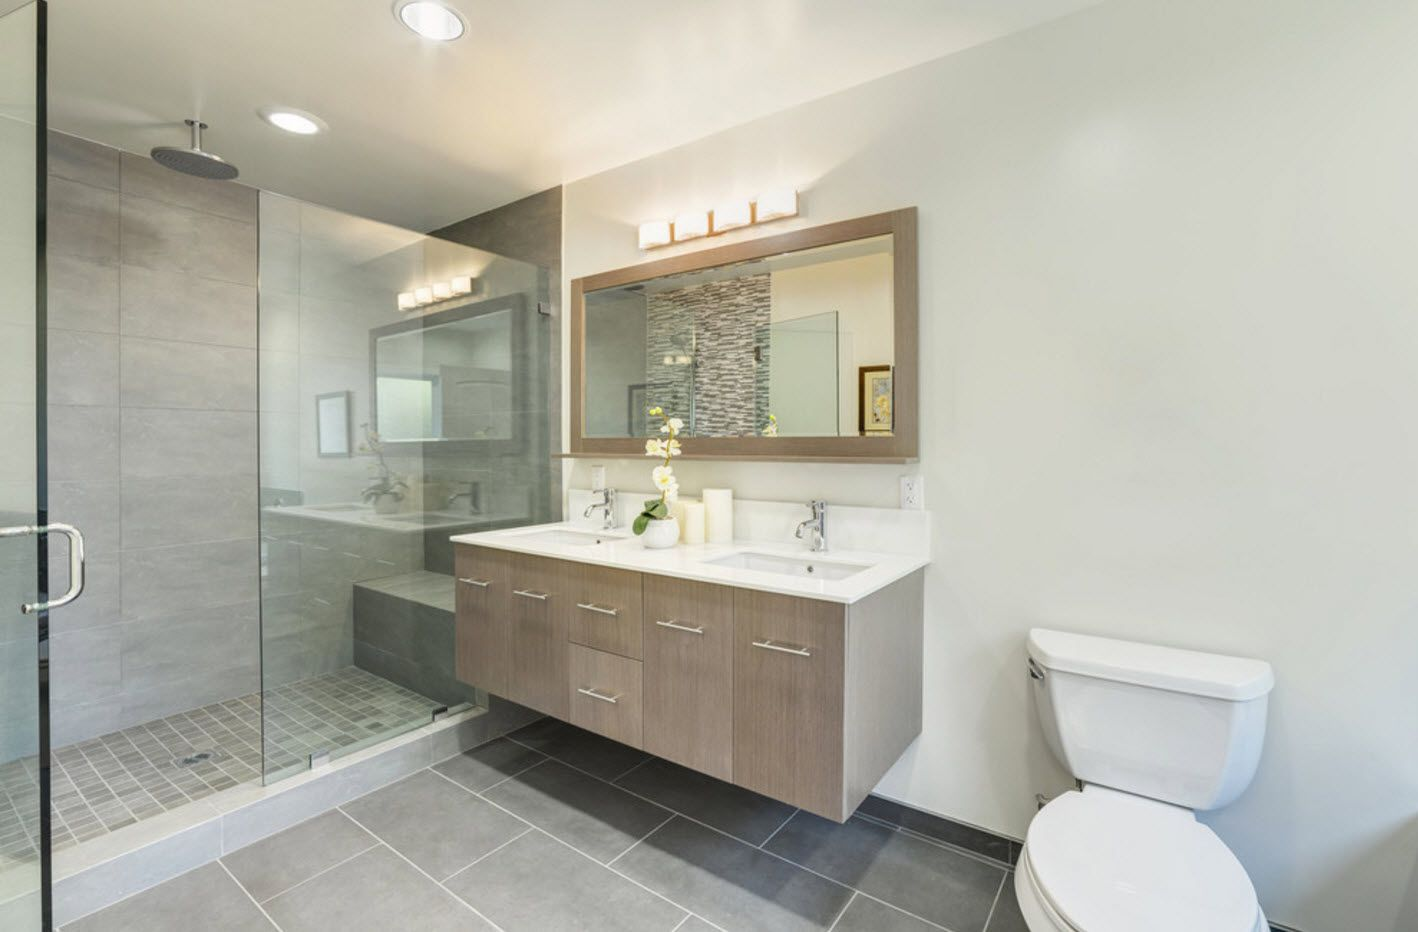 typical modern design with airy levitating bathroom vanity